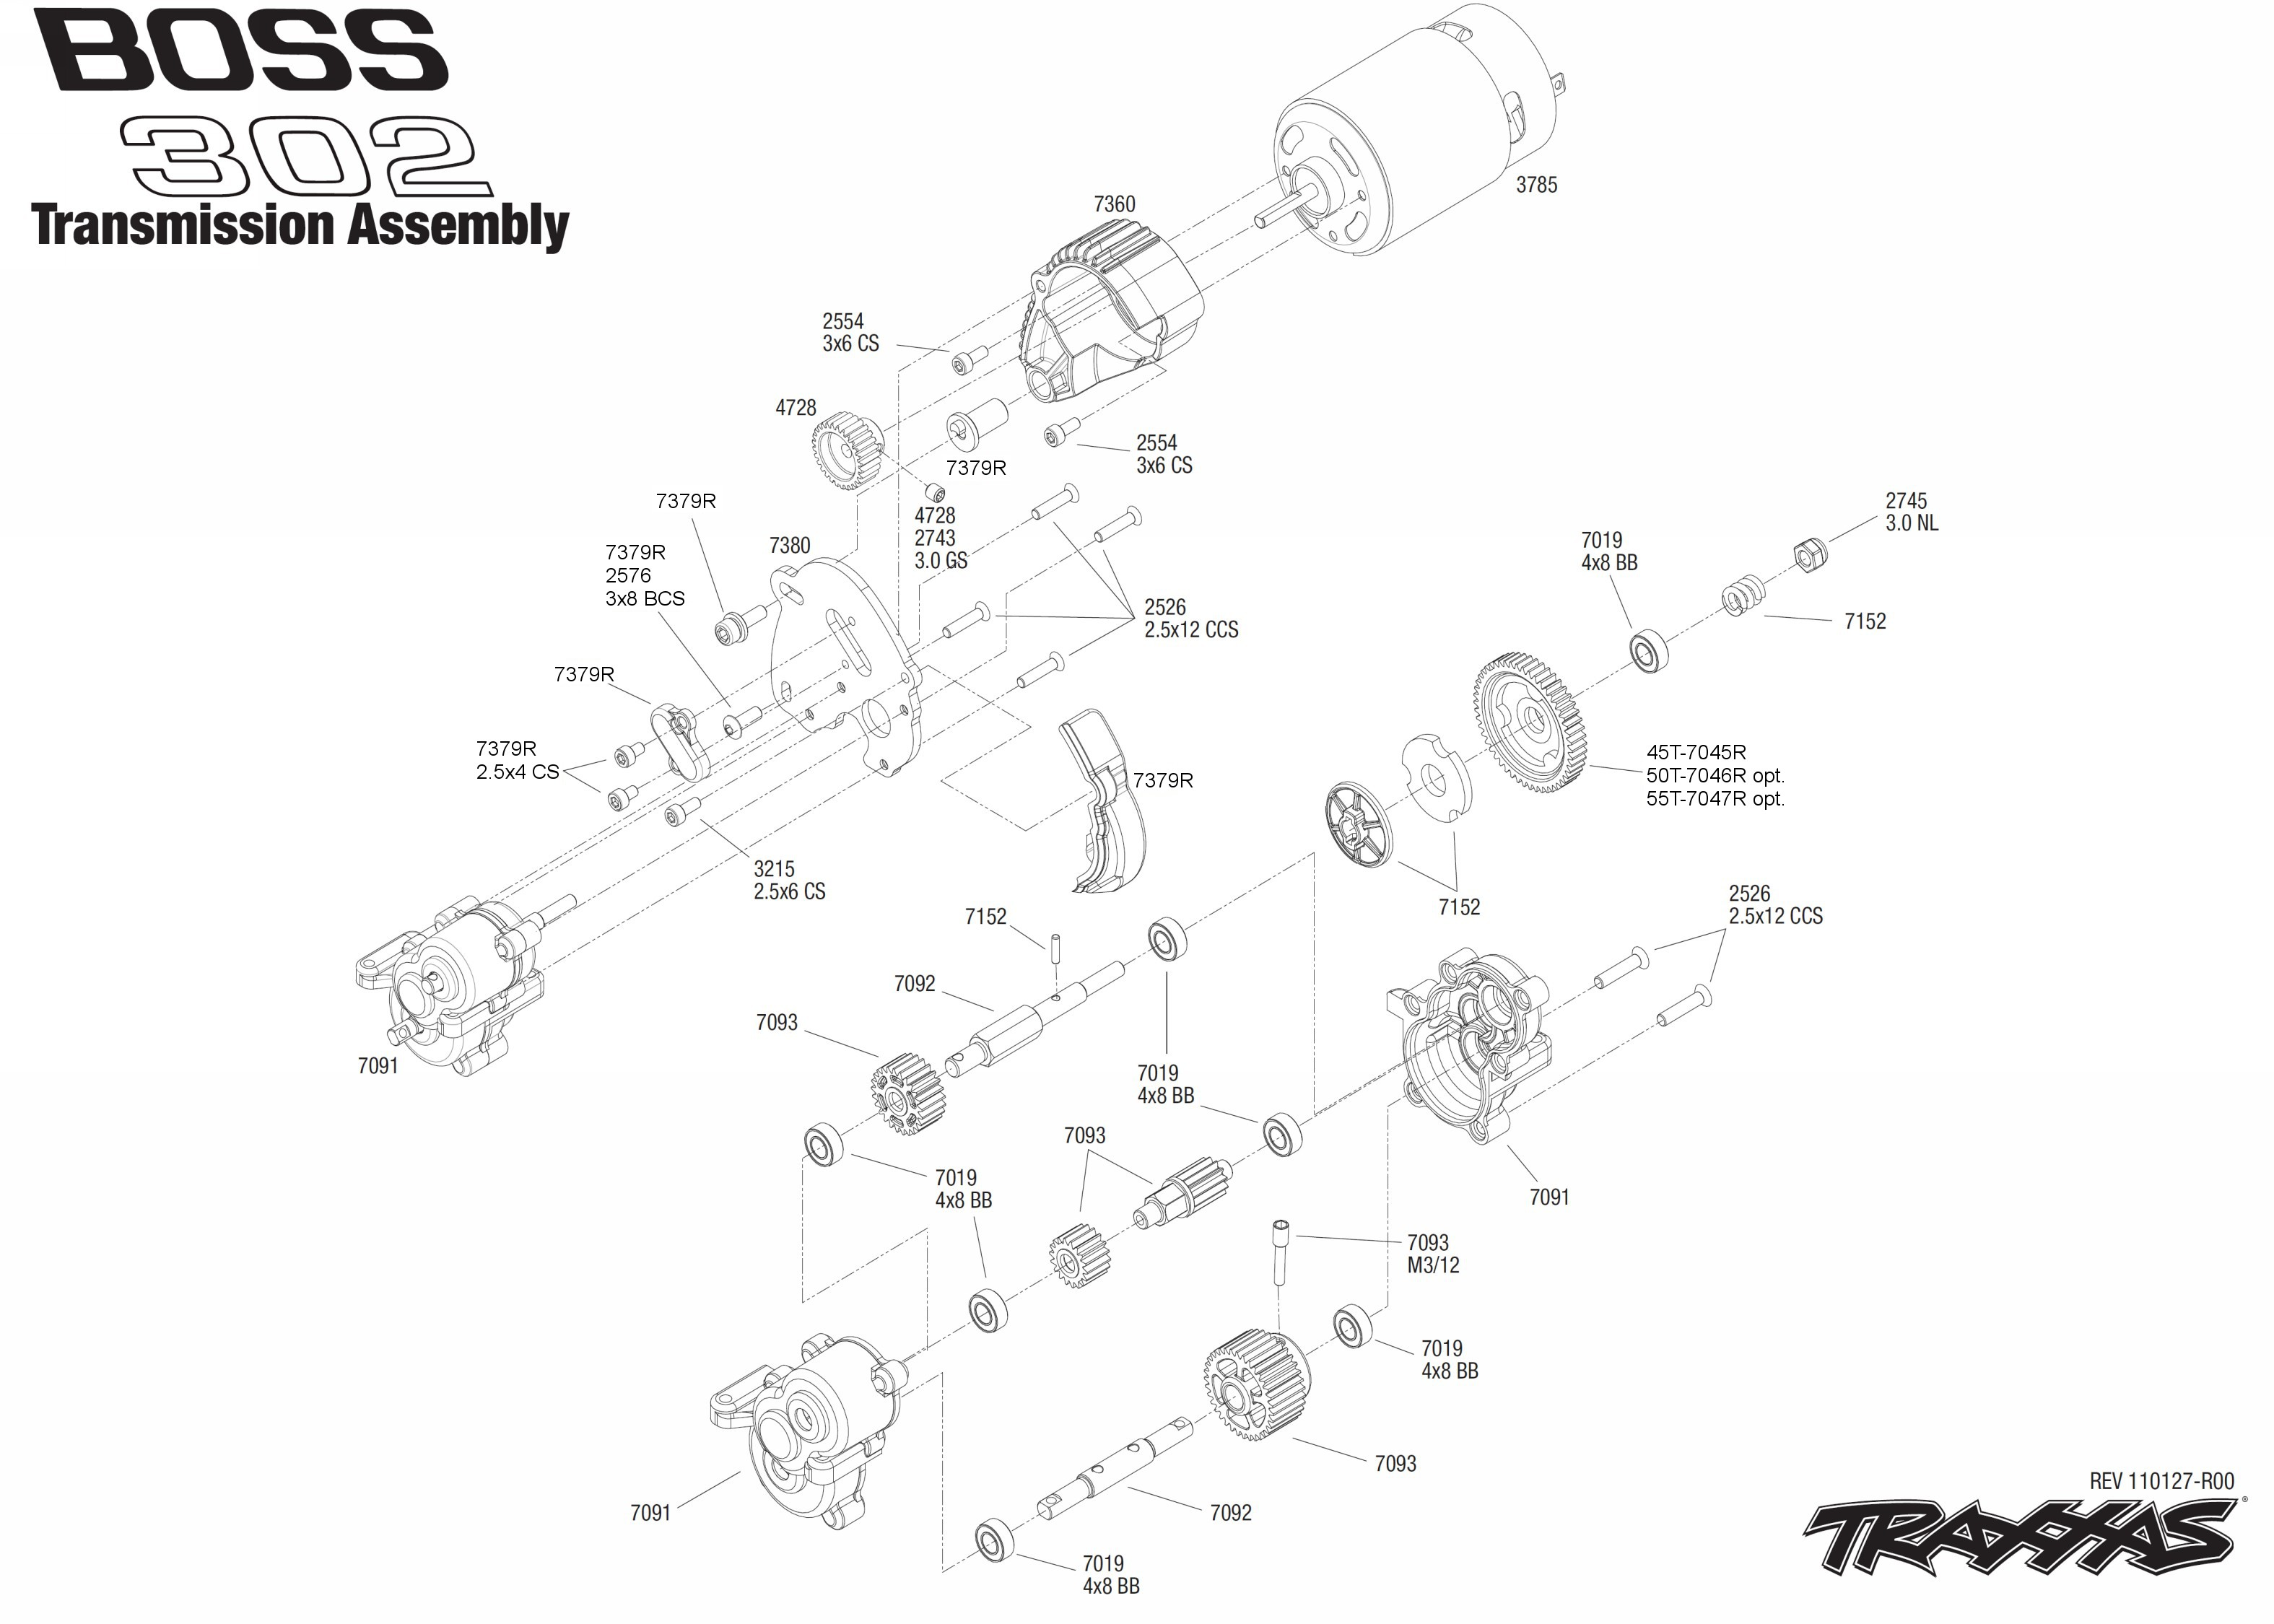 exploded view traxxas mustang boss 302 1 16 transmission astra rh astramodel cz 1967 Mustang Boss 302 RC Mustang Boss 302